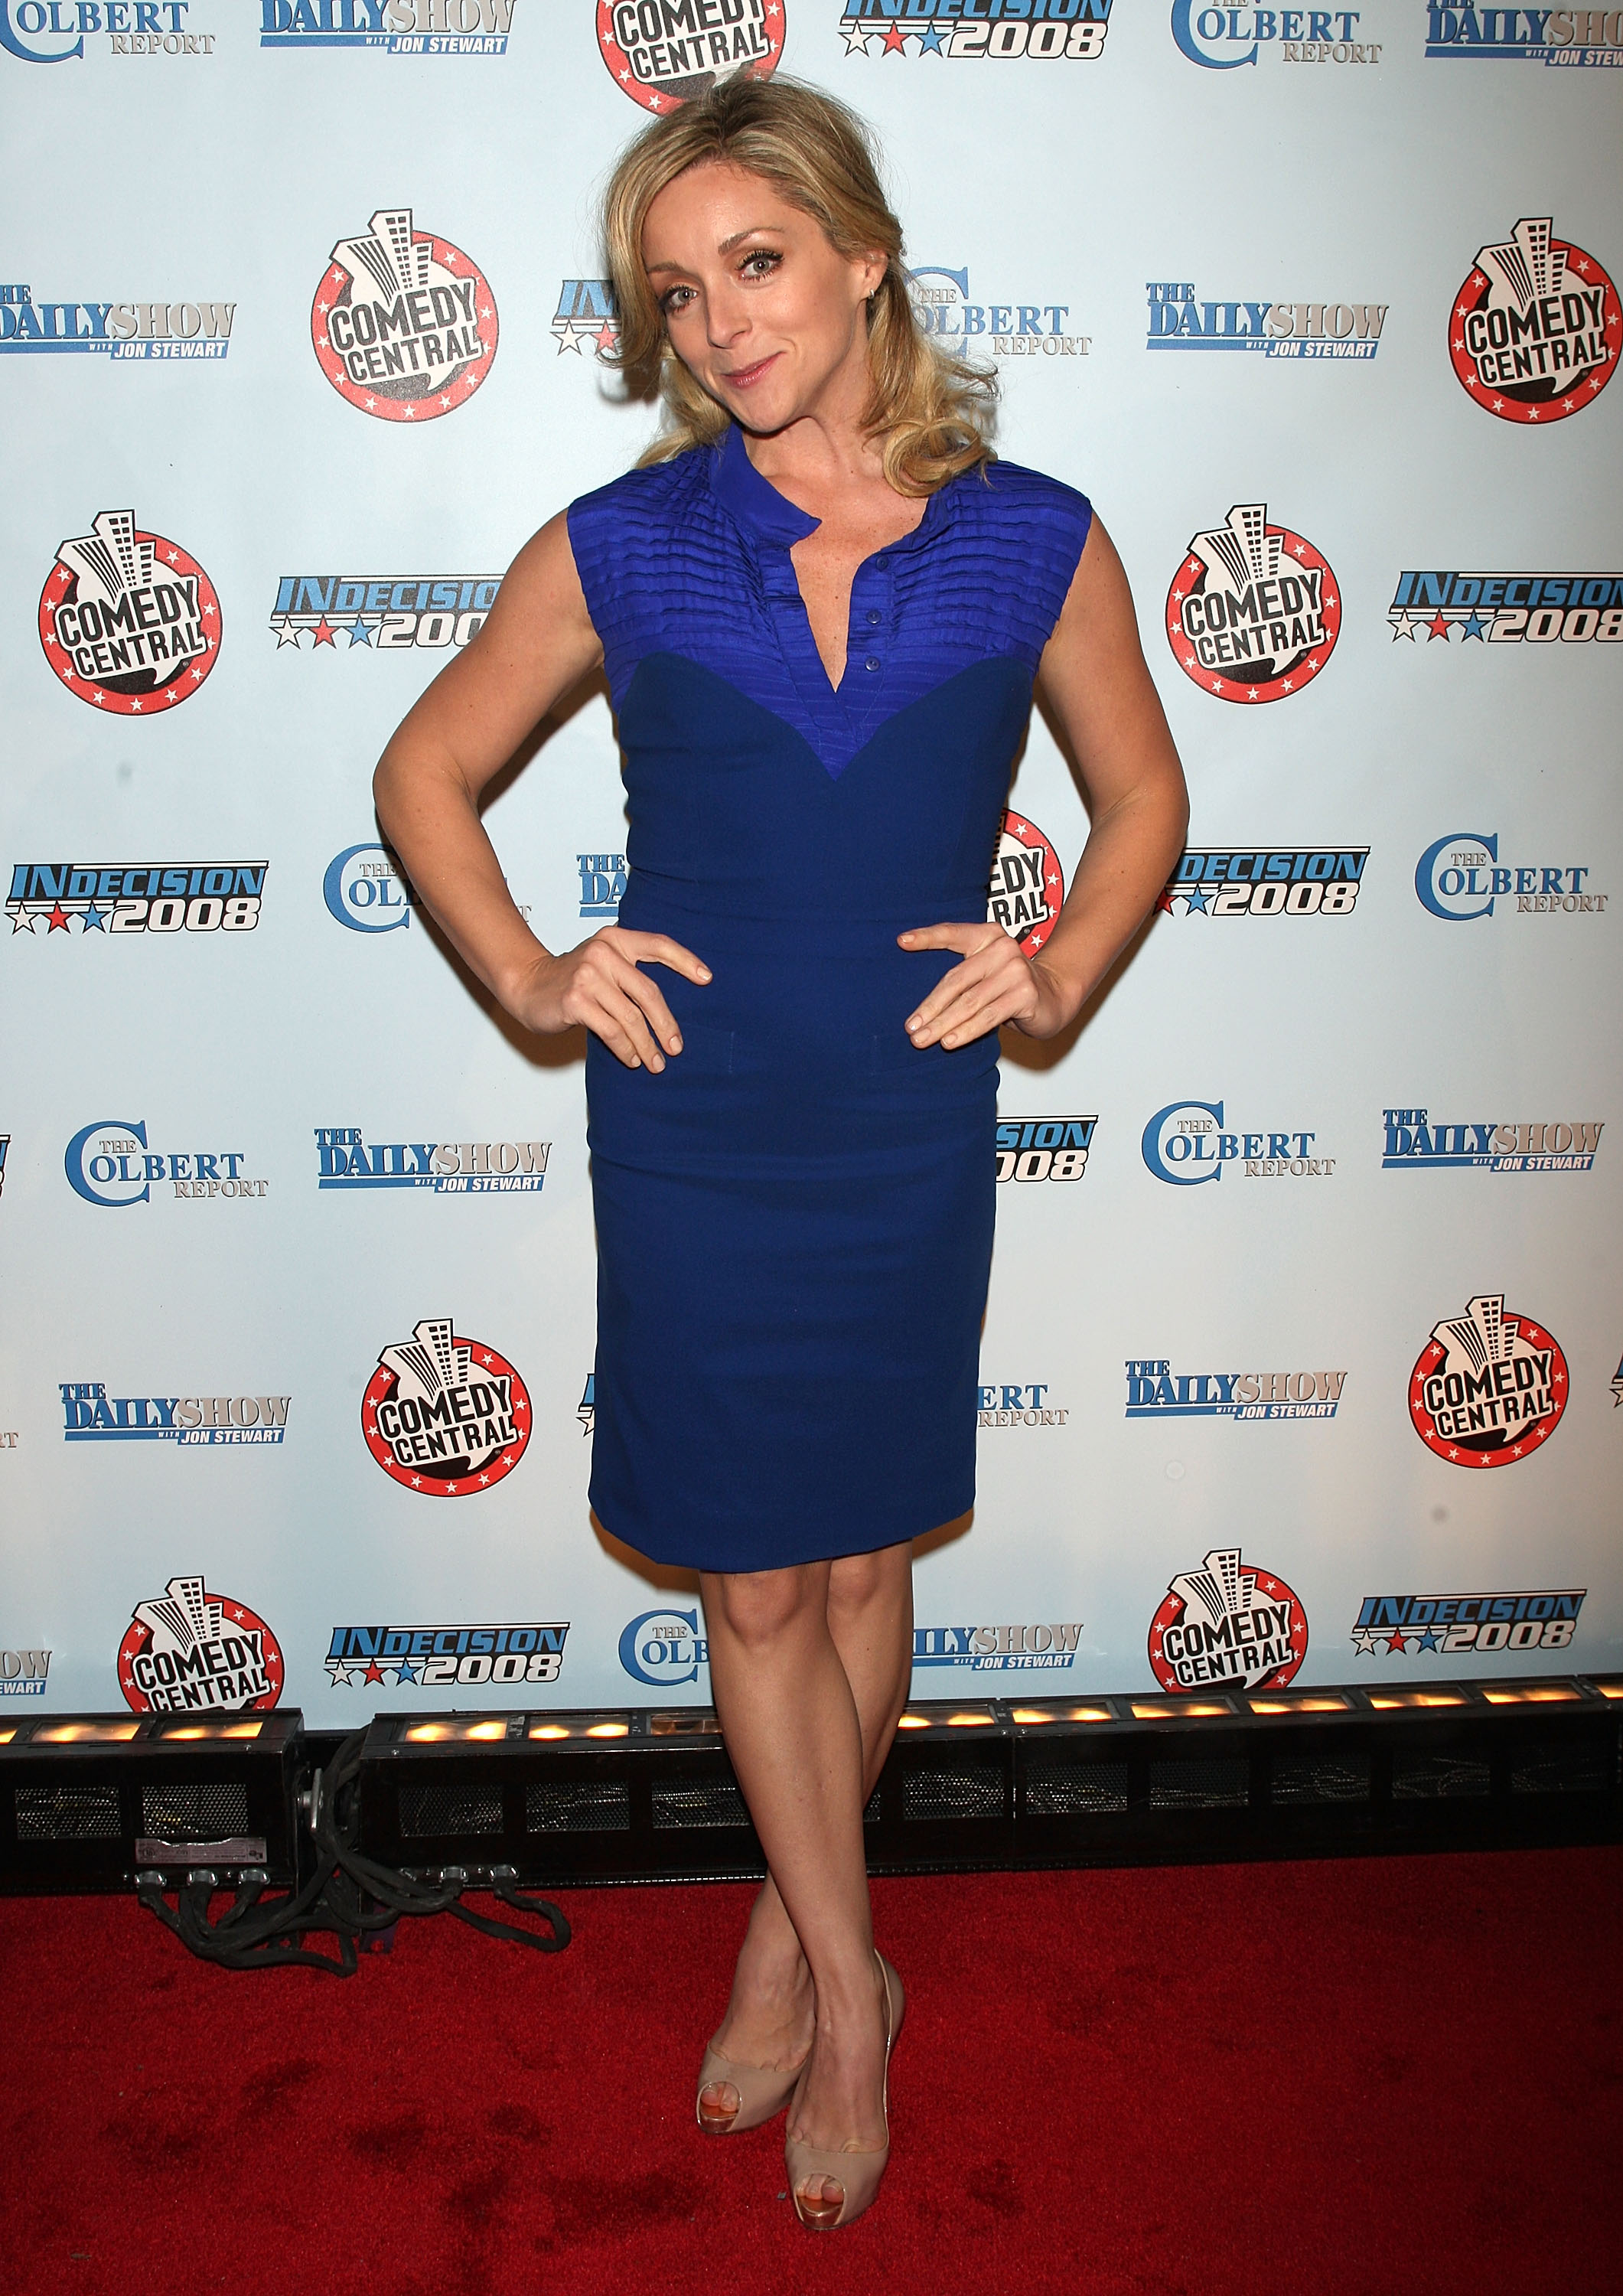 67738_Celebutopia-Jane_Krakowski-Comedy_Central25s_Indecision_2008_Election_Night_viewing_party-03_122_132lo.jpg